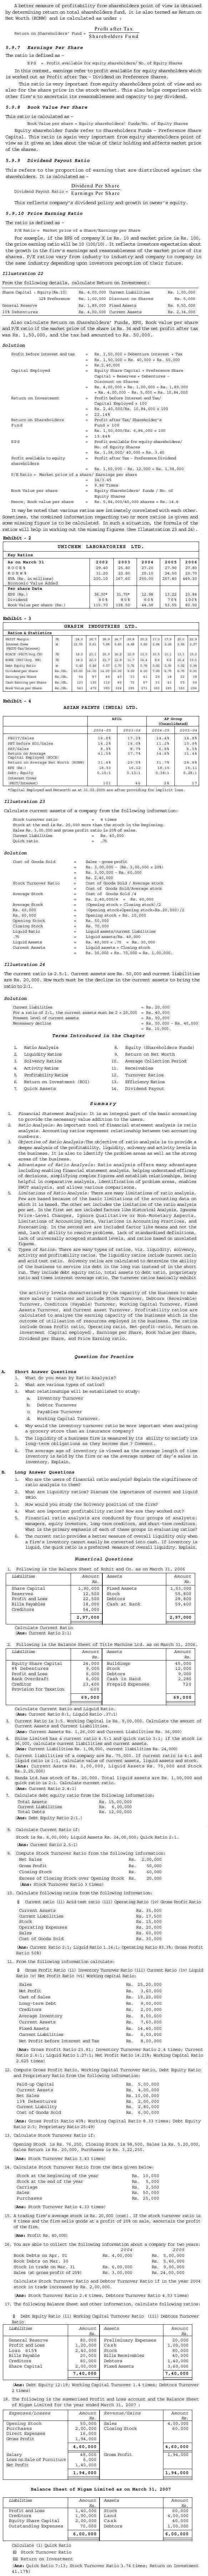 NCERT Class XII Accountancy II Chapter 5 - Accounting Ratios